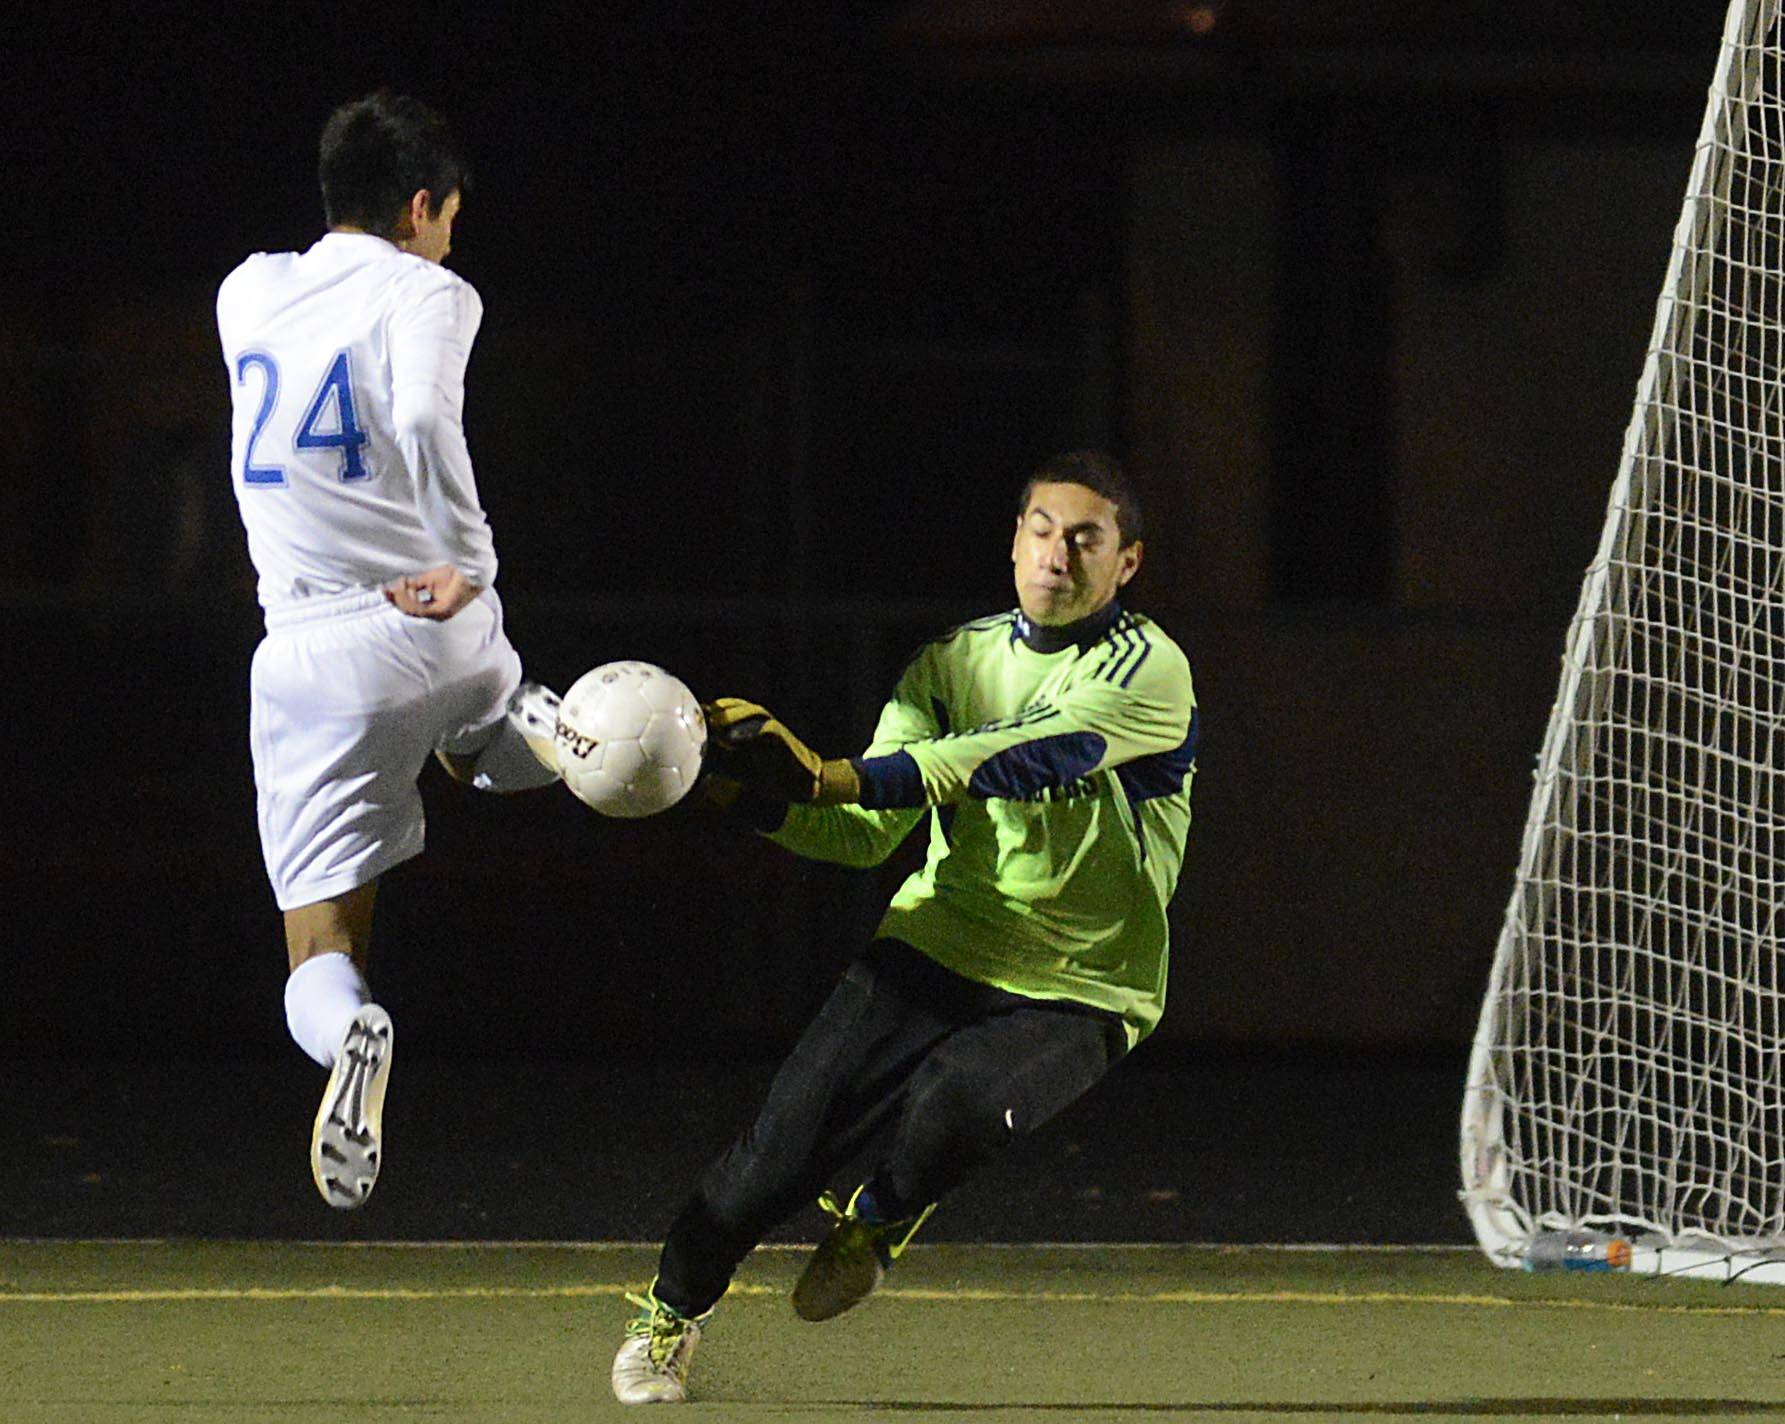 Larkin's Alex Cruz is unable to get the ball past Dundee-Crown goalkeeper Jose Gonzalez in regional play last season at Millennium Field in Streamwood.